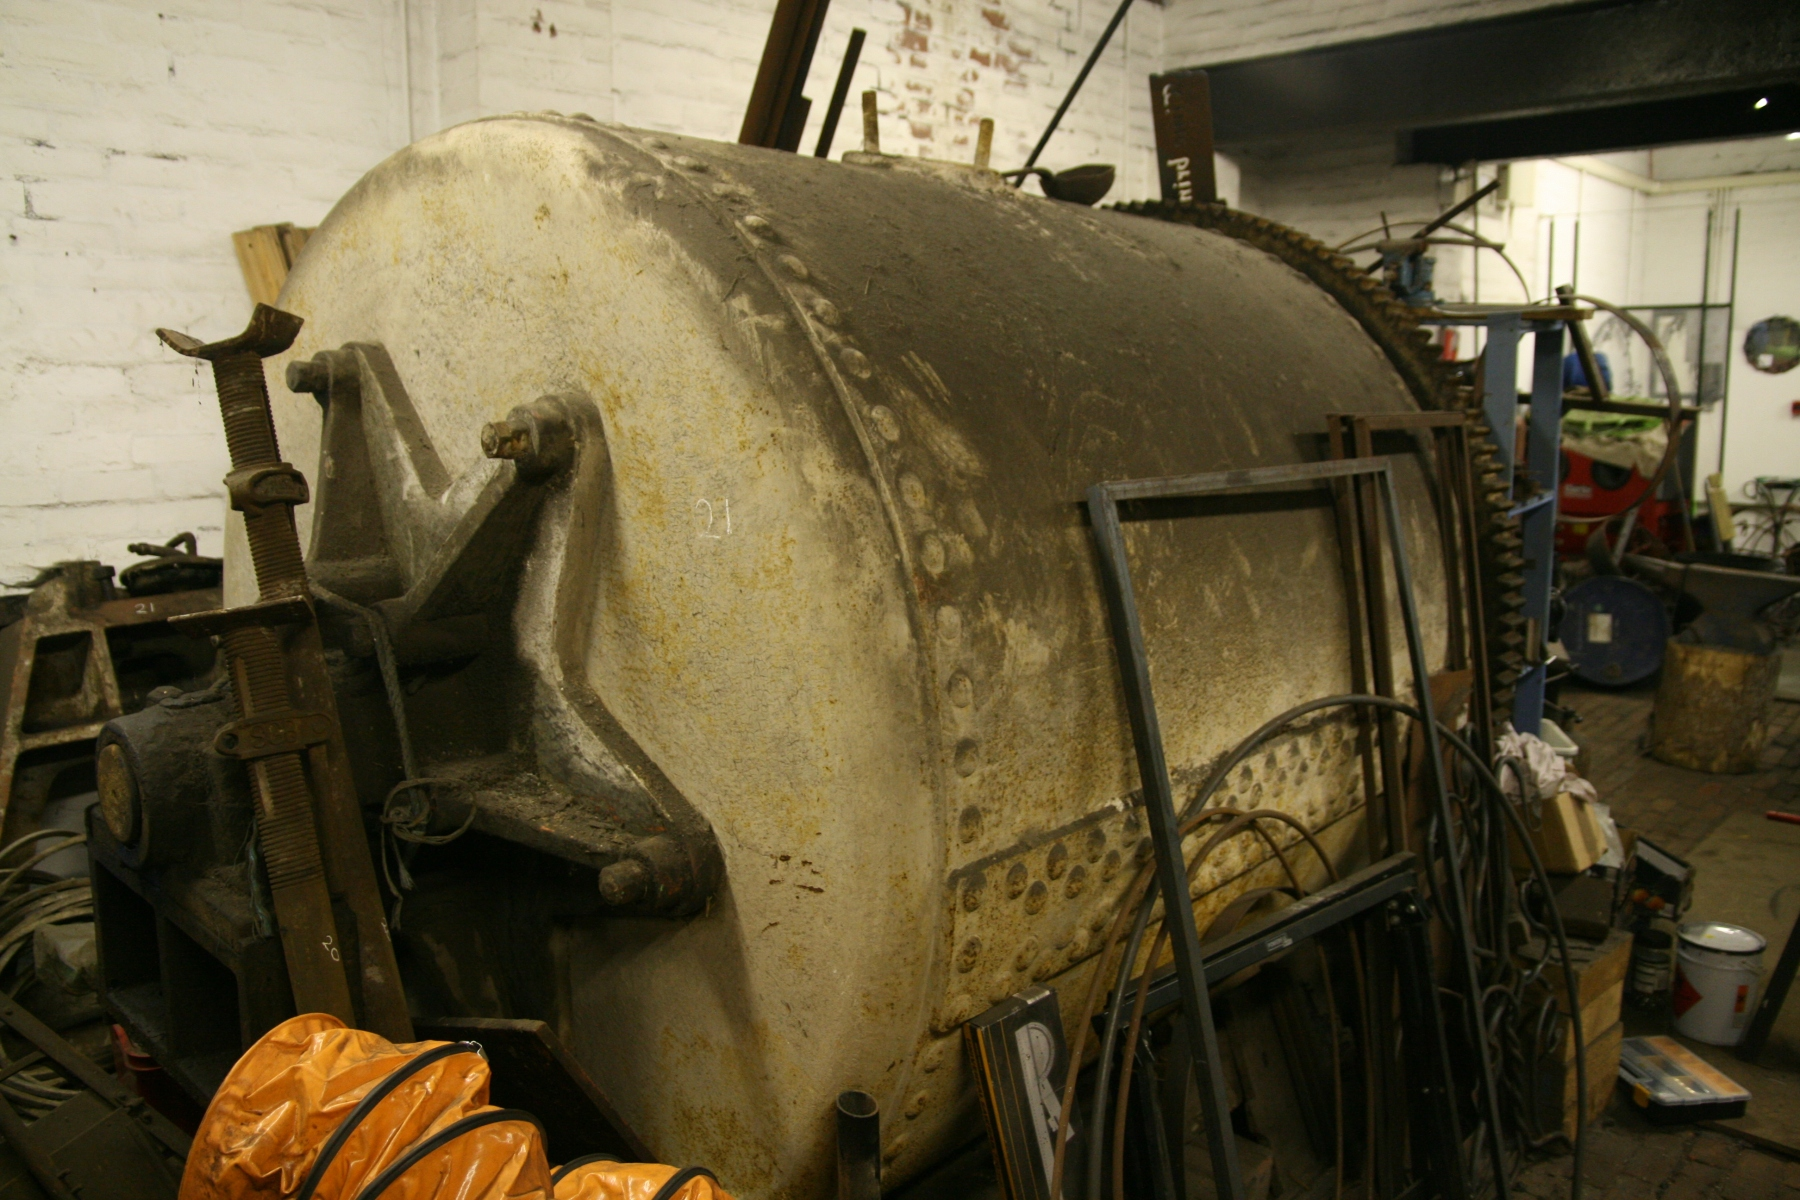 GOODWIN 1904 BALL MILL BEFORE RESTORATION